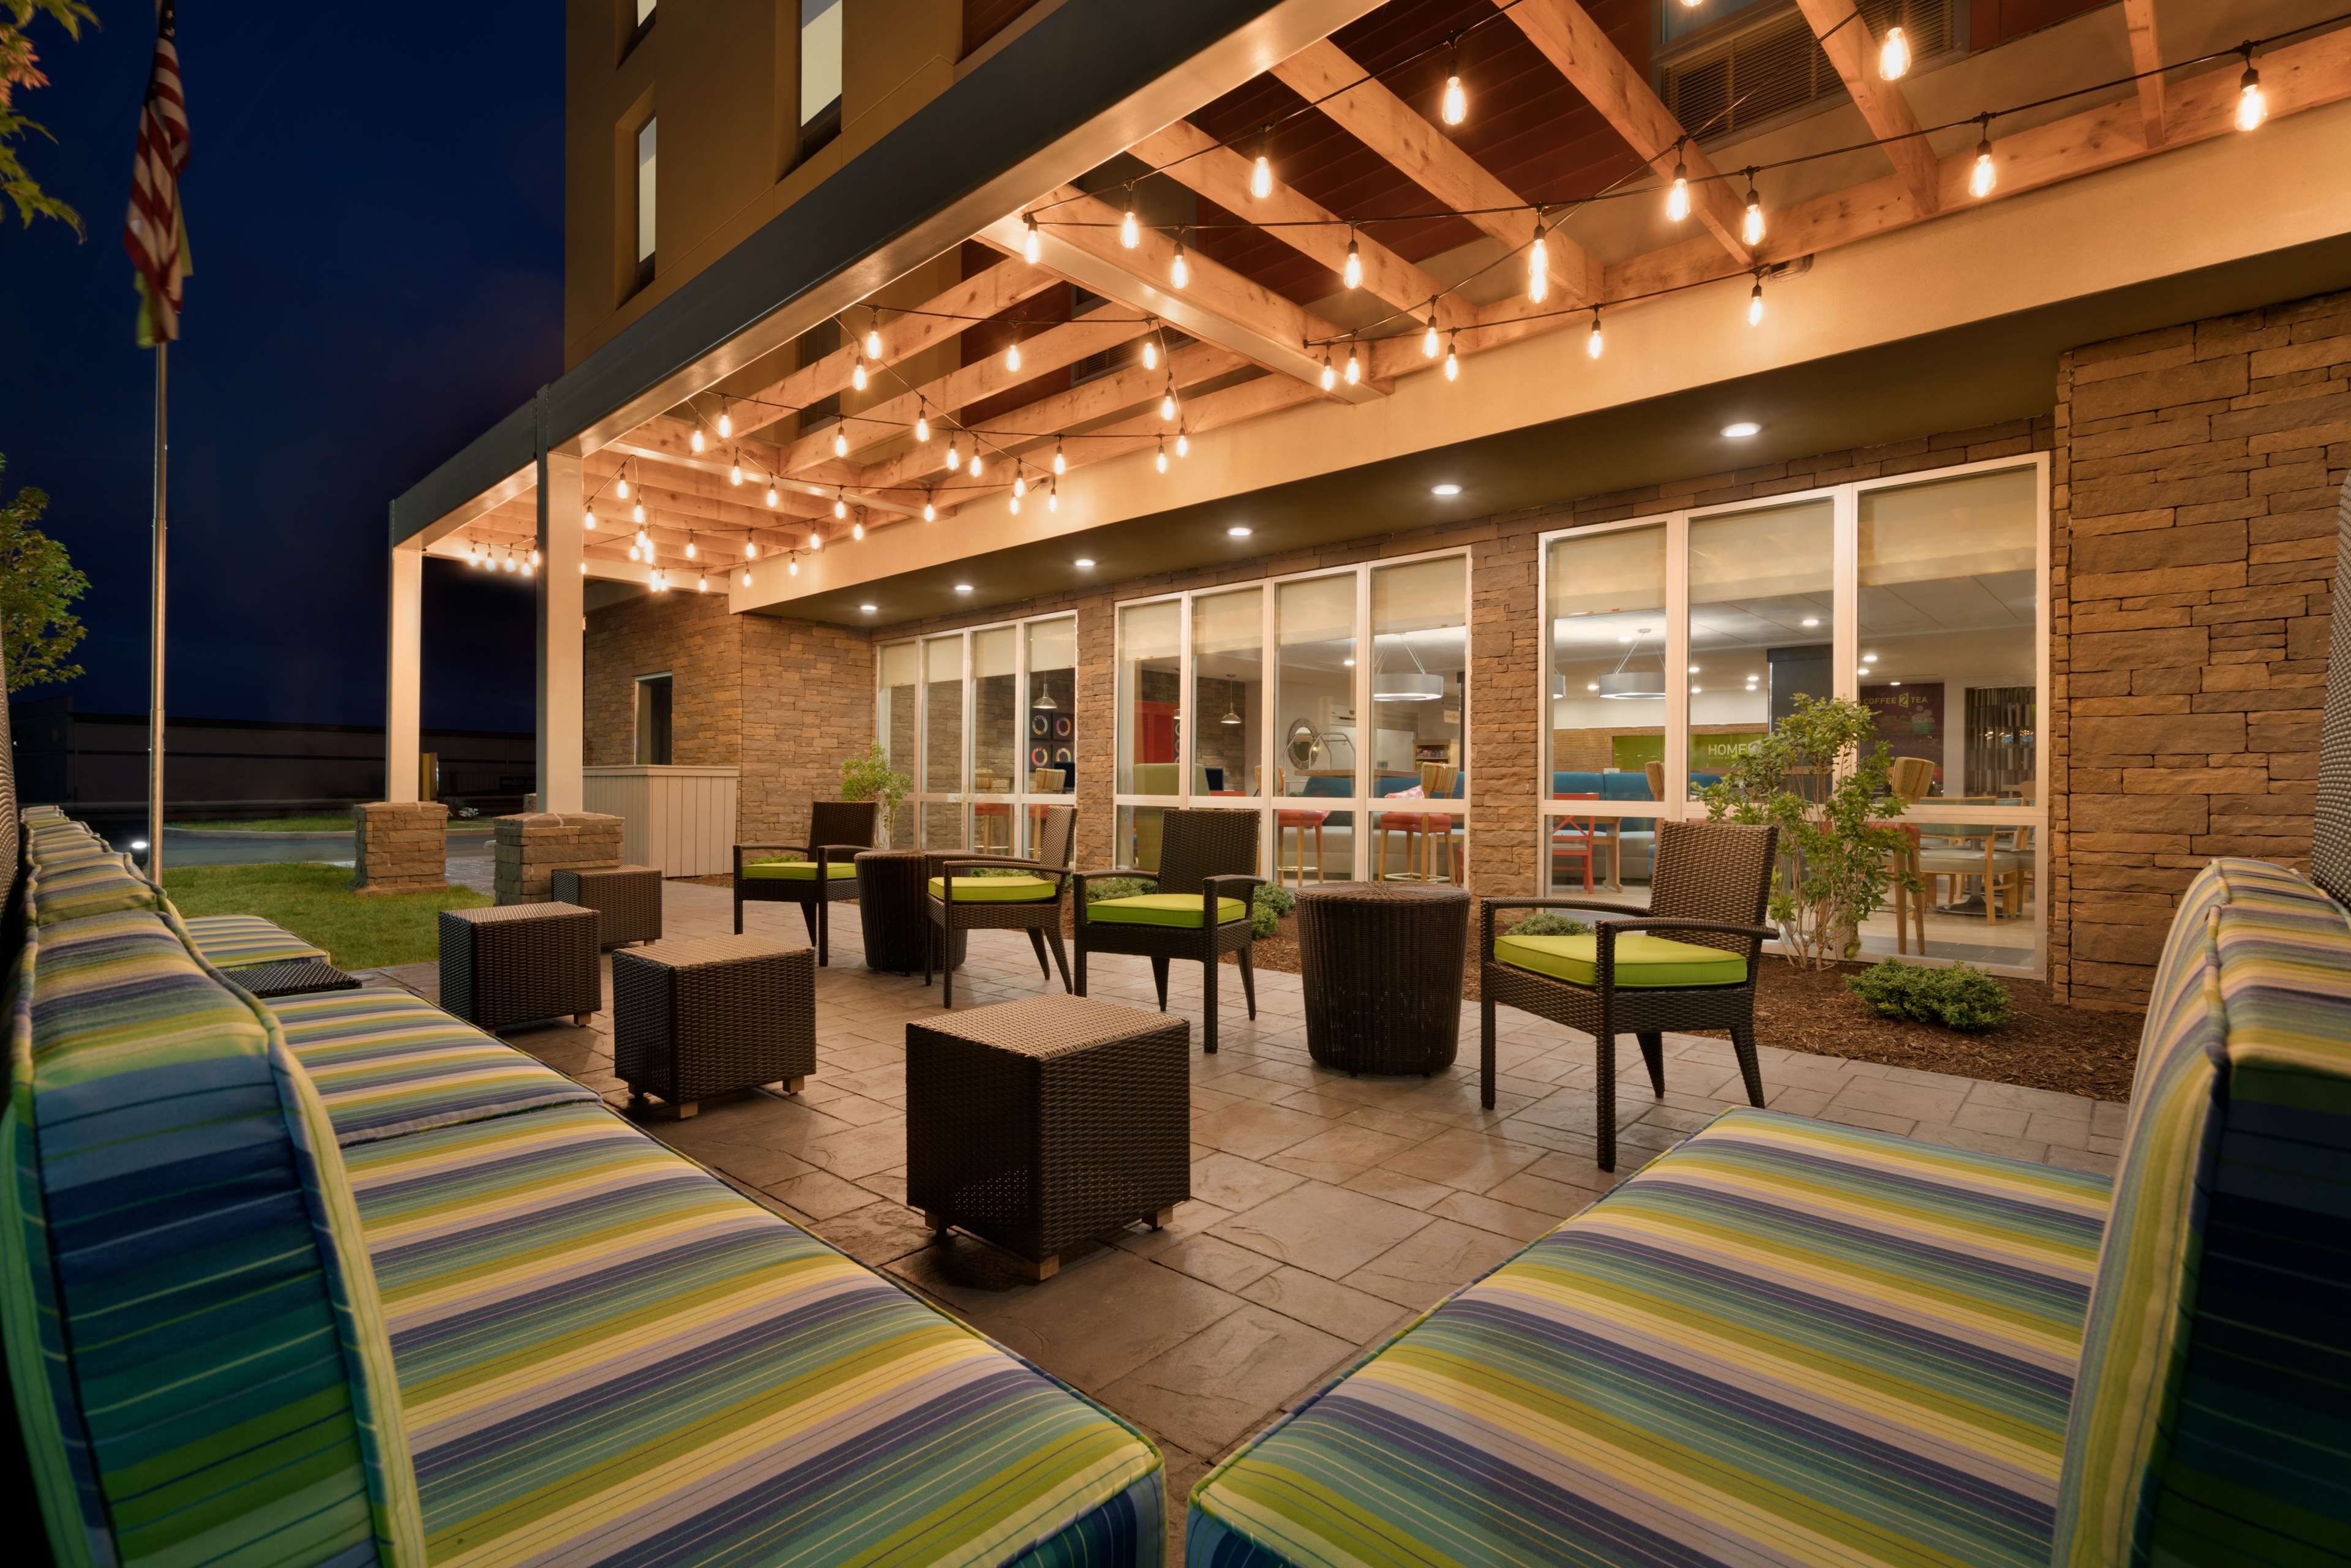 Home2 Suites by Hilton Roanoke image 1